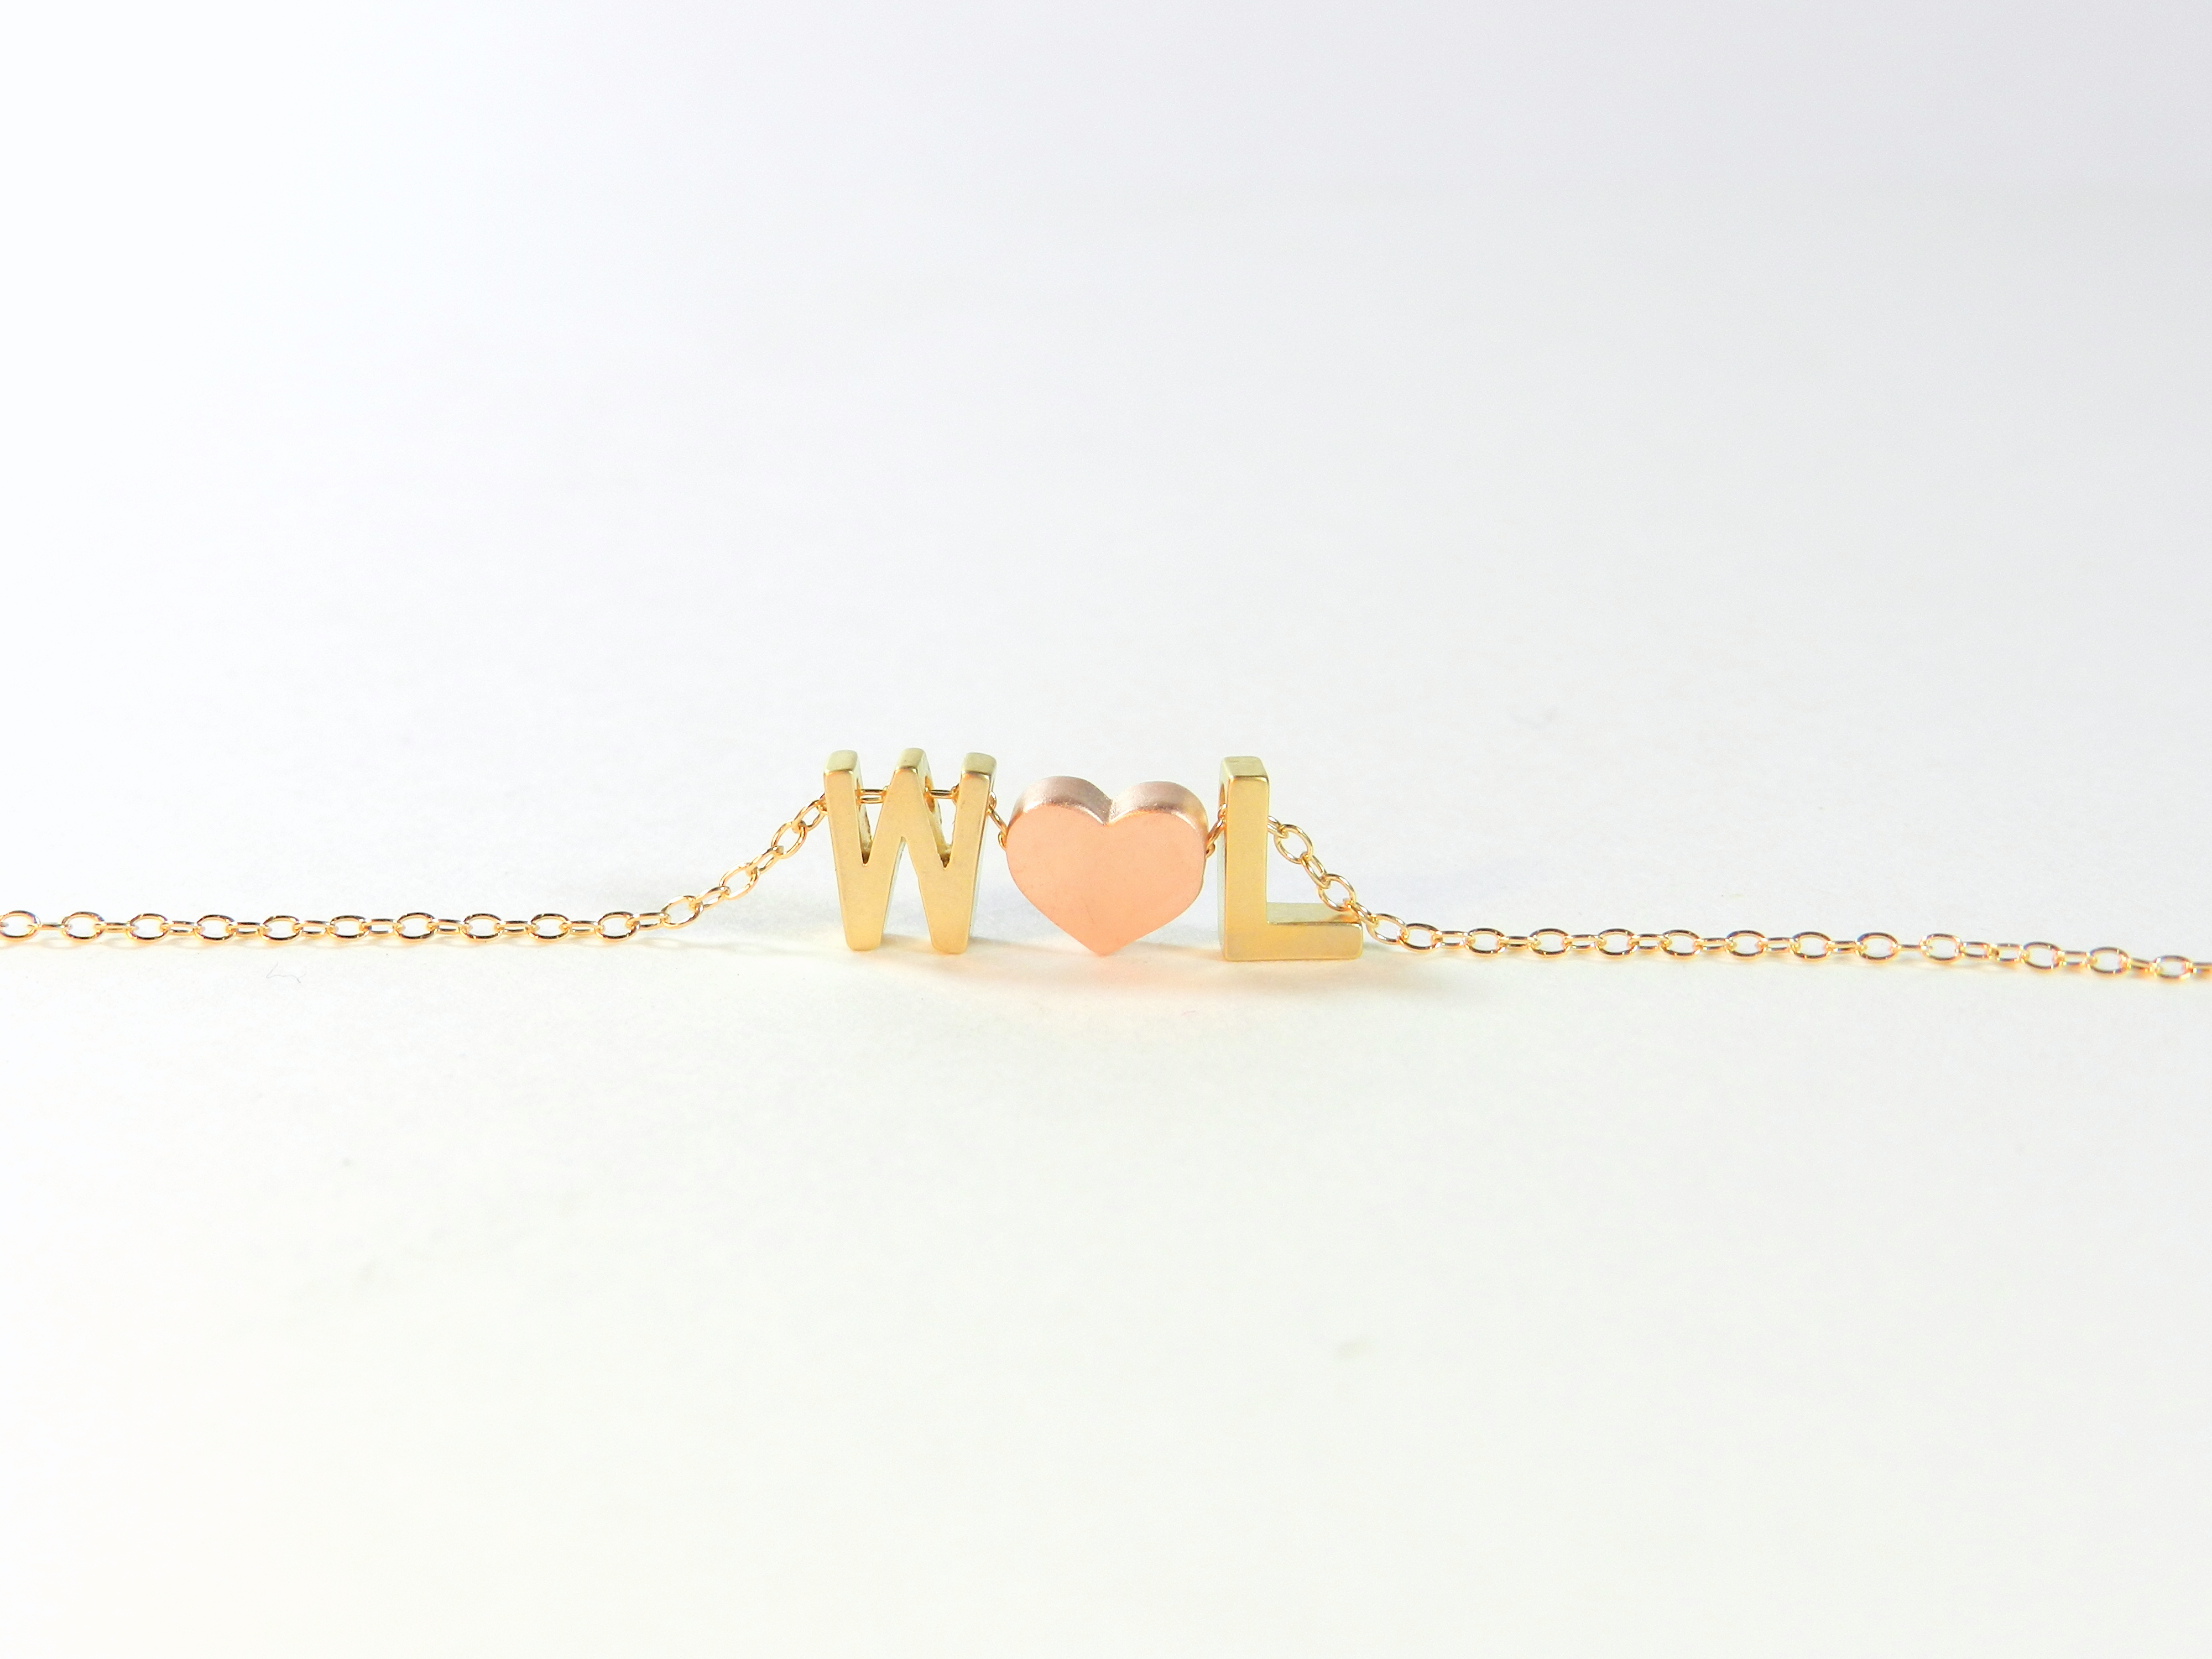 sweethearts necklace from bip & bop